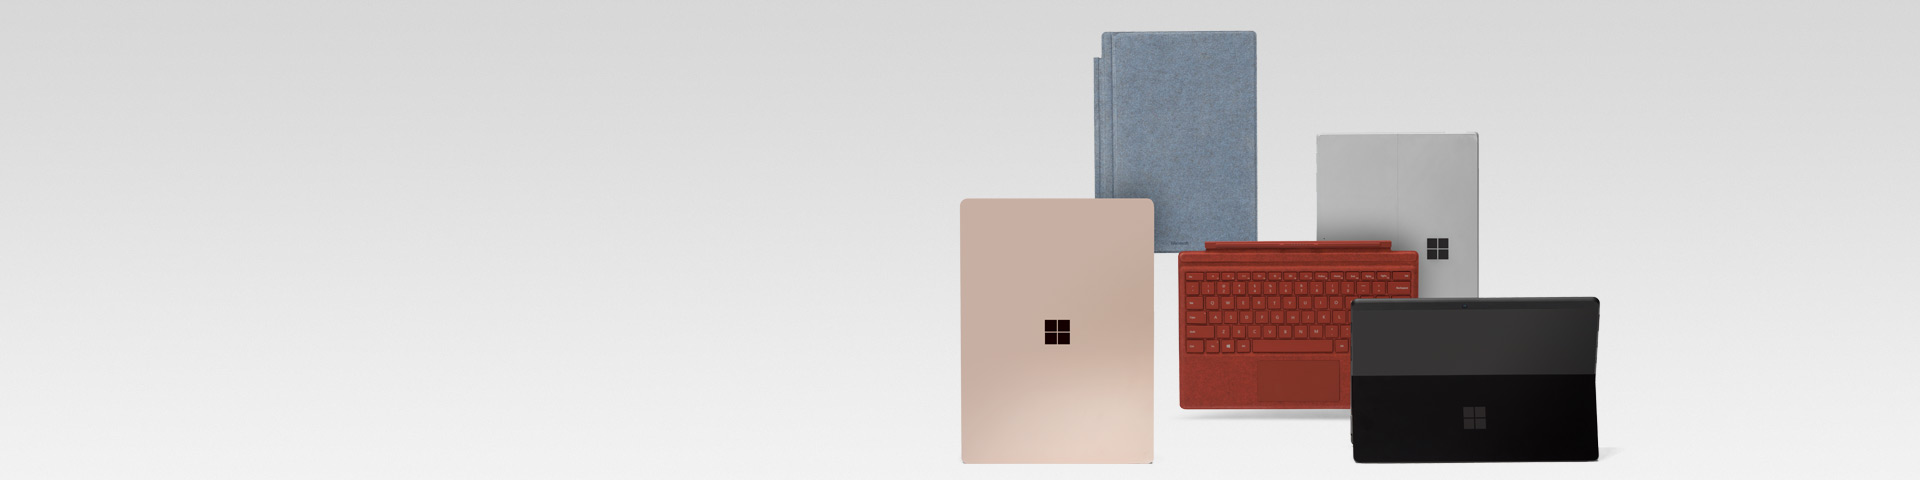 Family of Surface computers